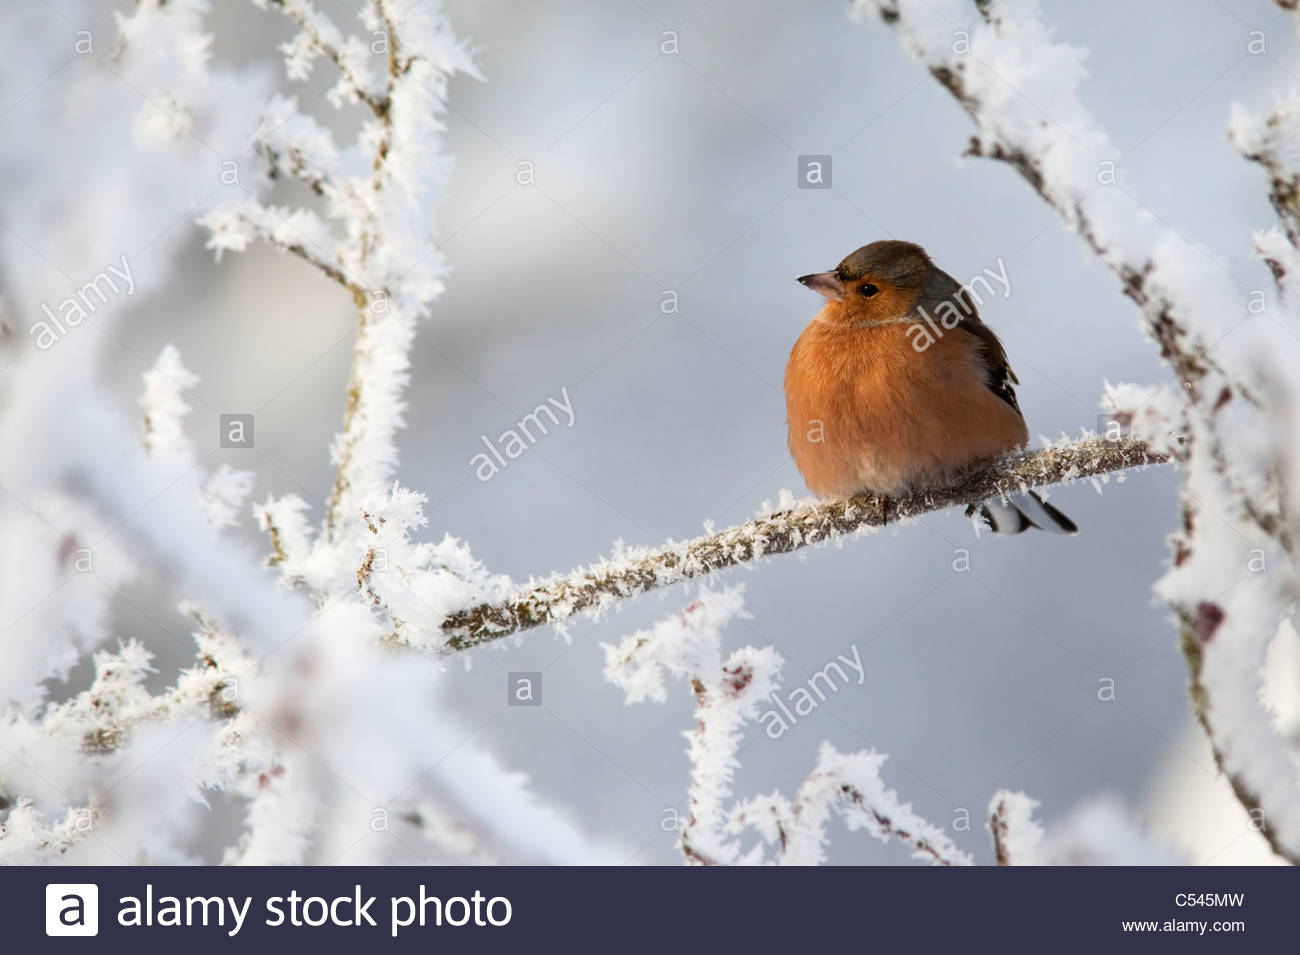 Chaffinch, Fringilla coelebs, in snow, Northumberland, UK - Stock Image